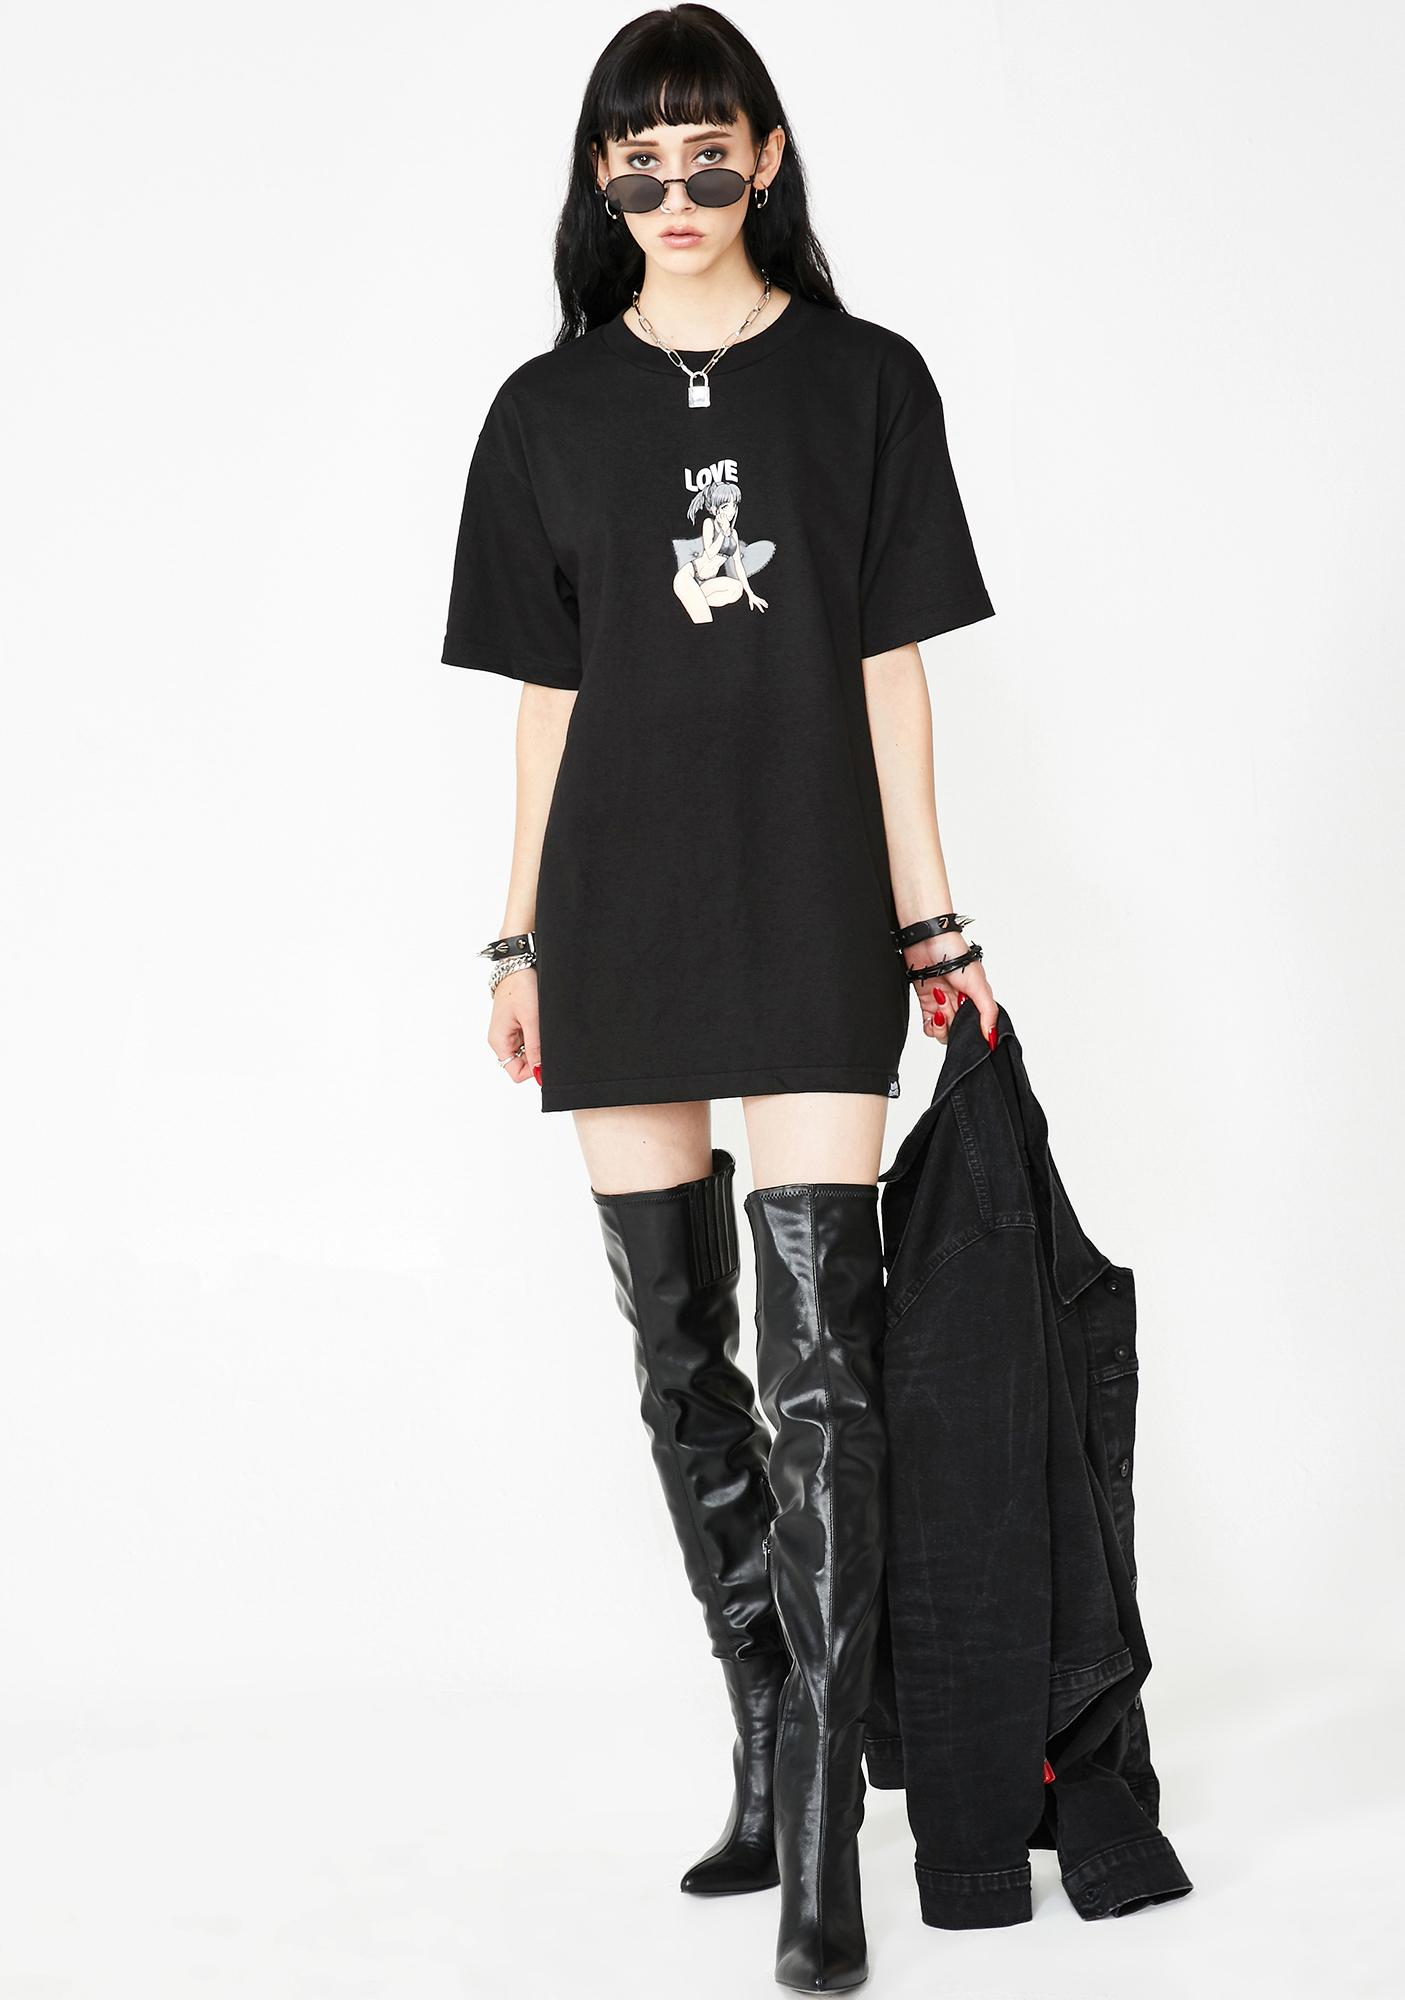 BROKEN PROMISES CO Love Anime Girl Tee